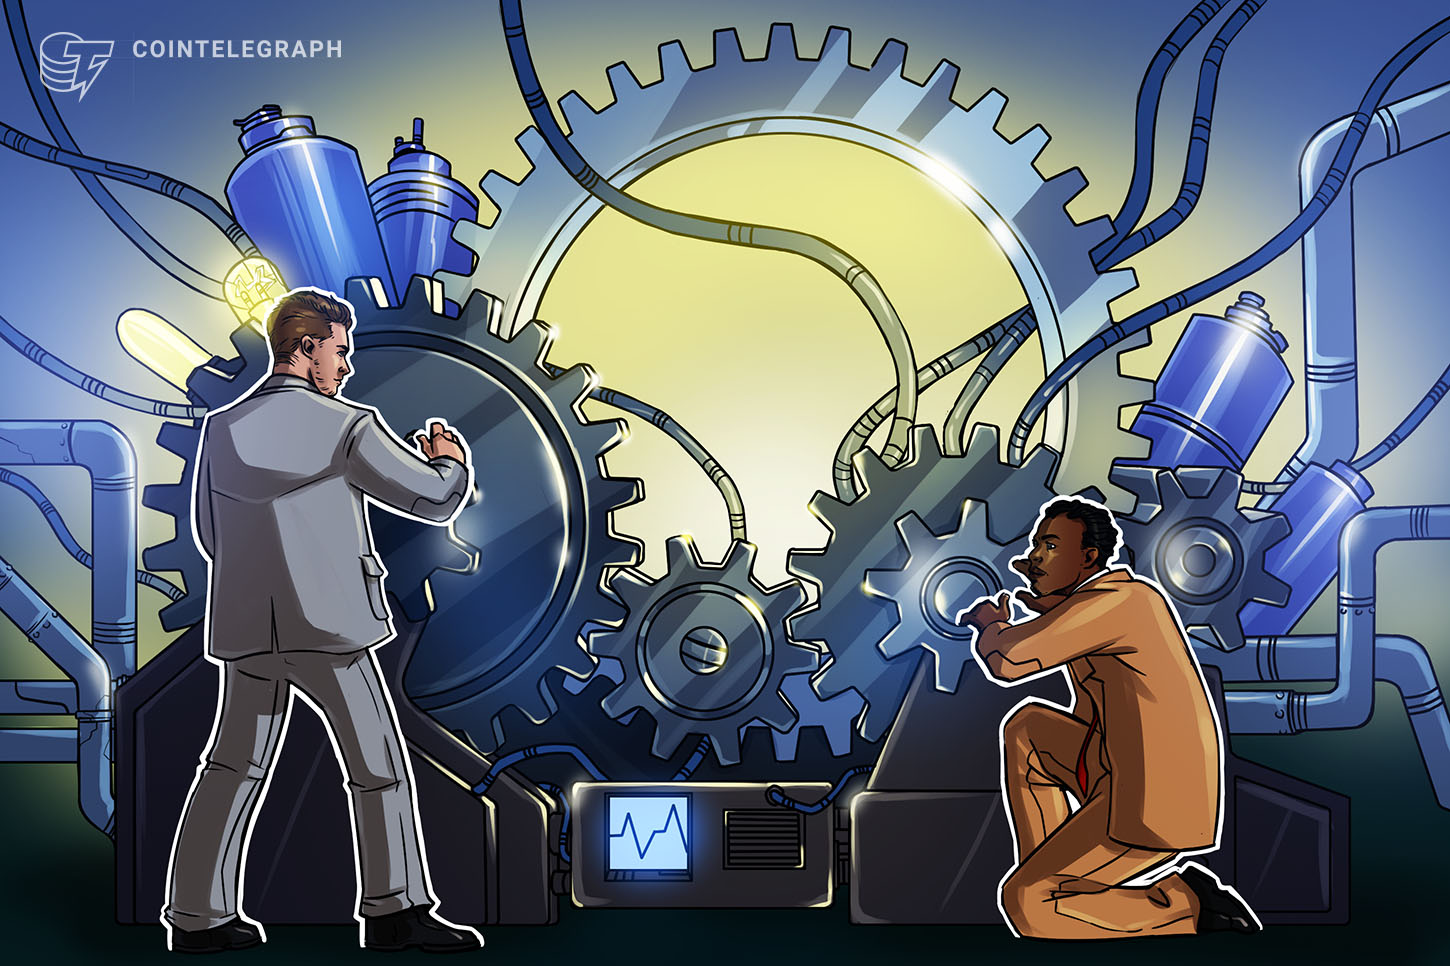 SBI's digital asset branch and SIX exchange plan joint crypto venture